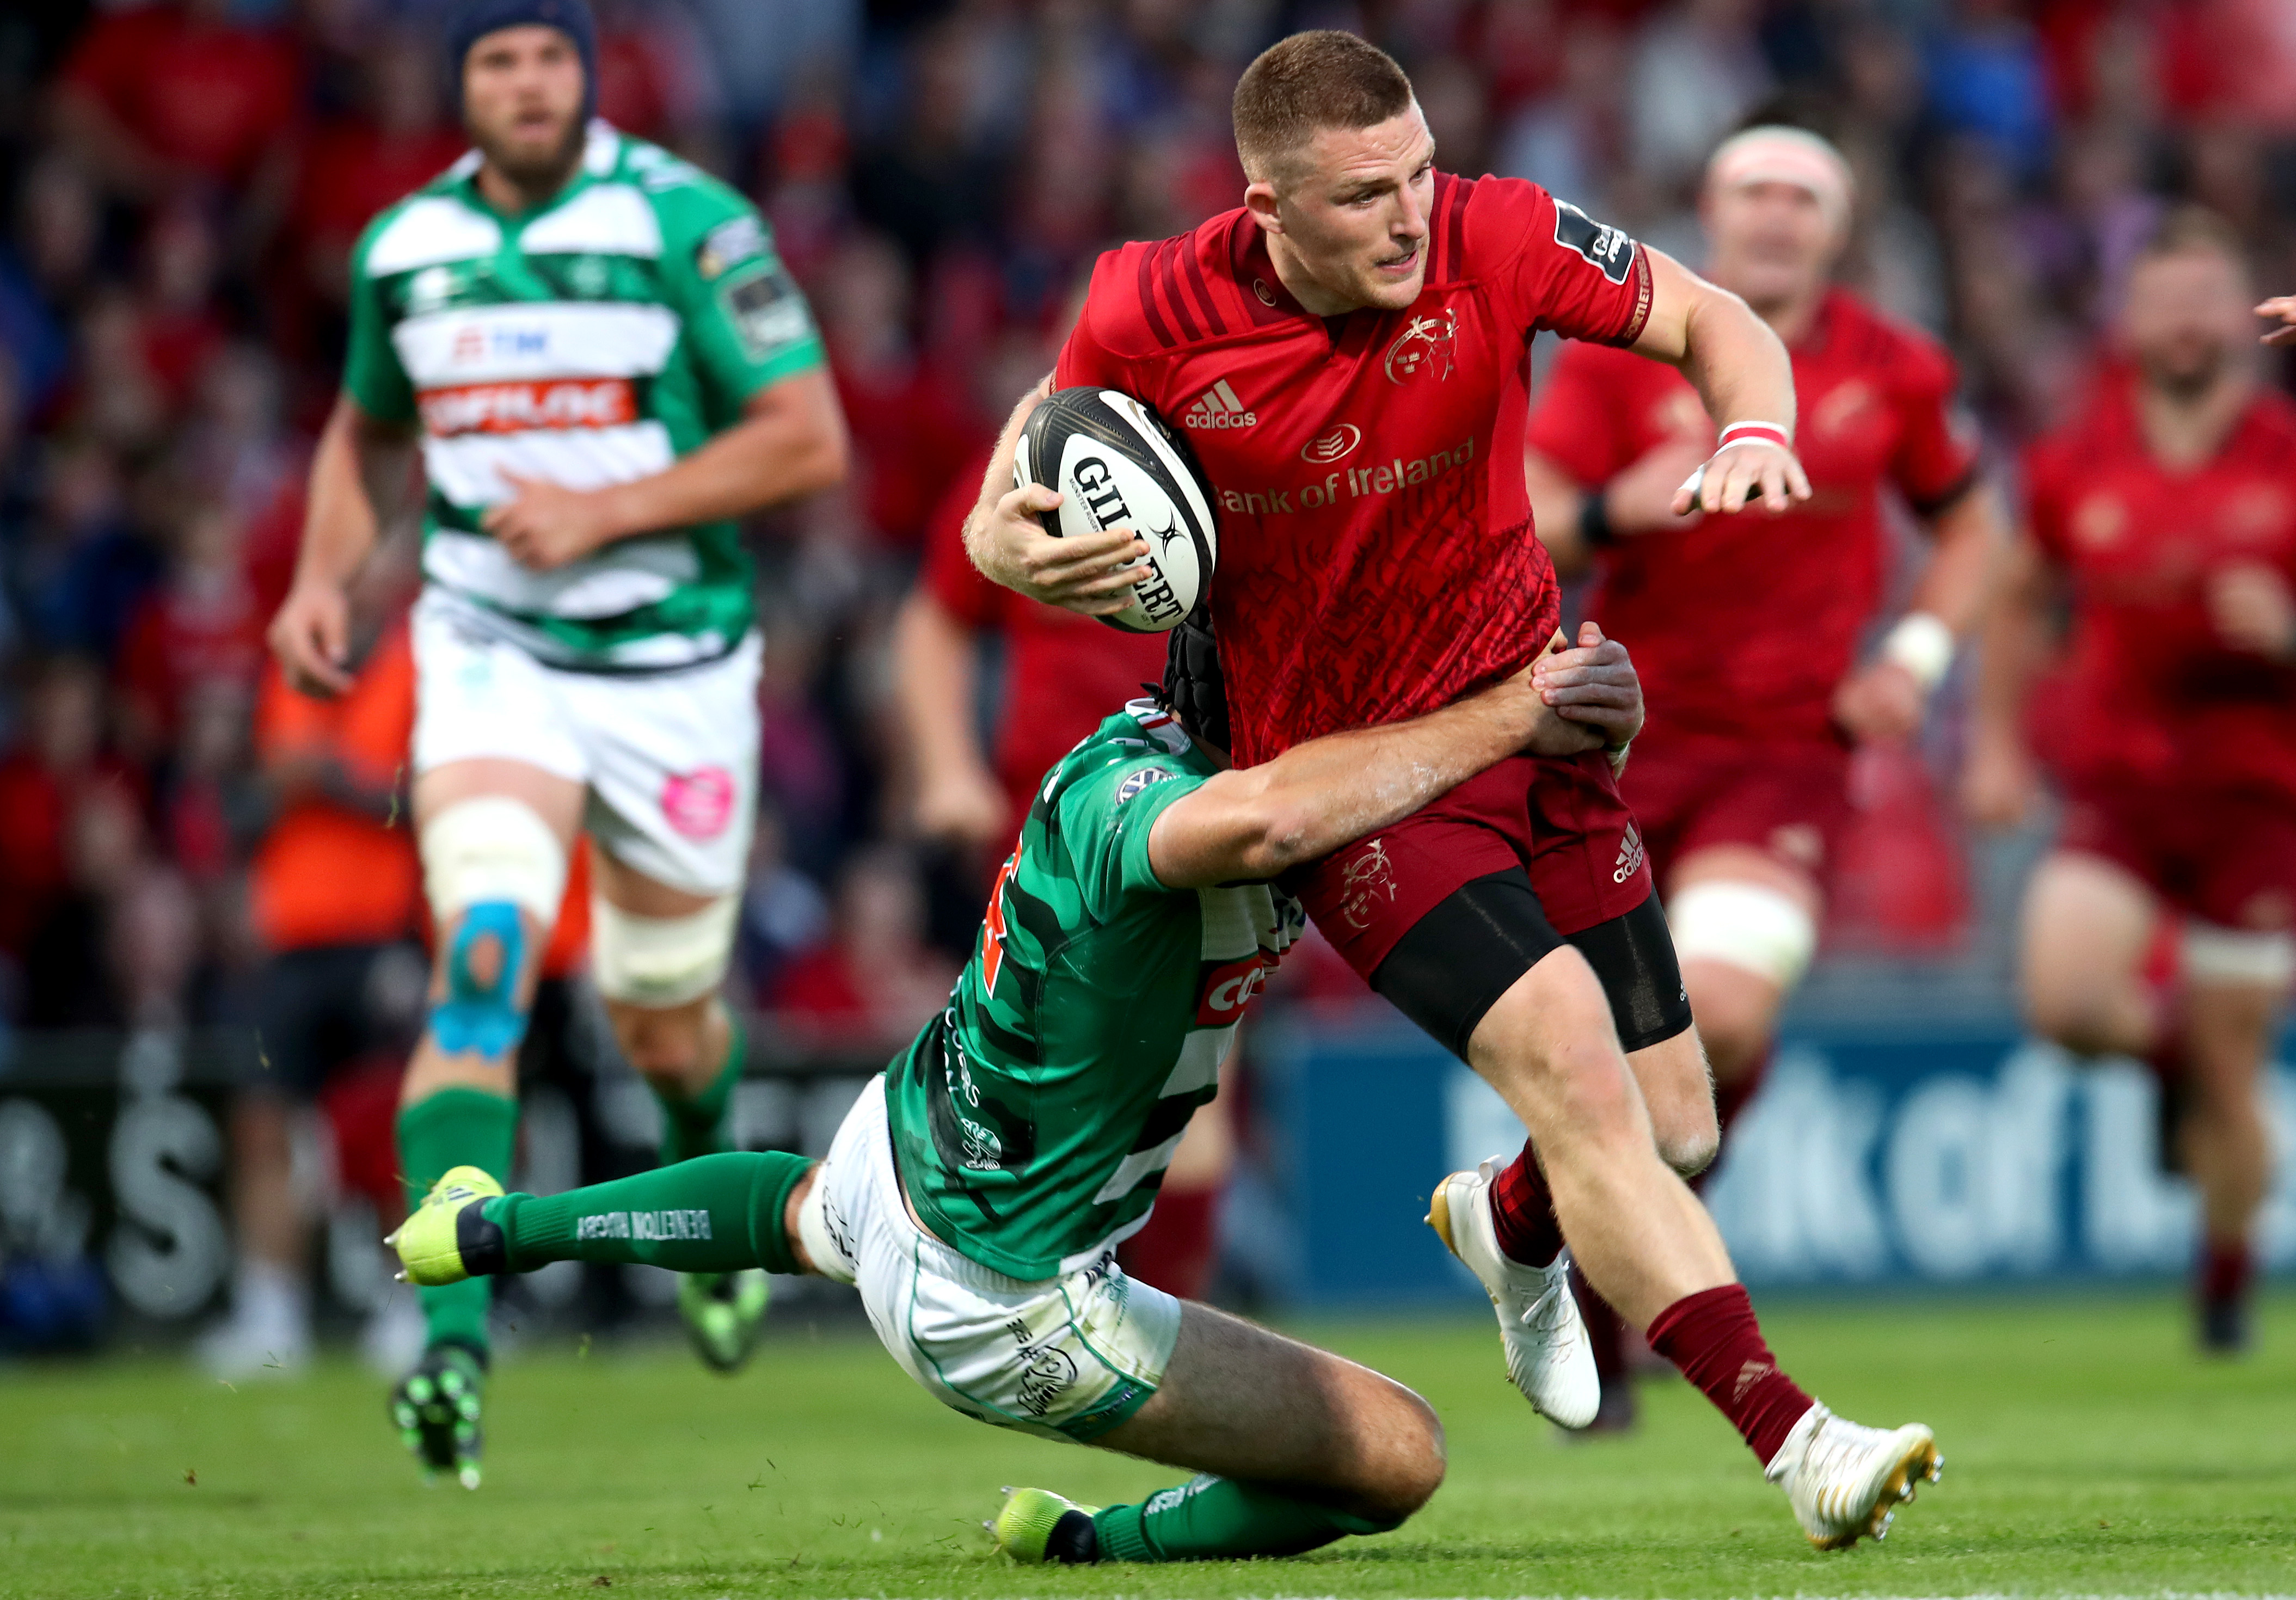 Andrew Conway will make his 100th PRO14 appearance this weekend.